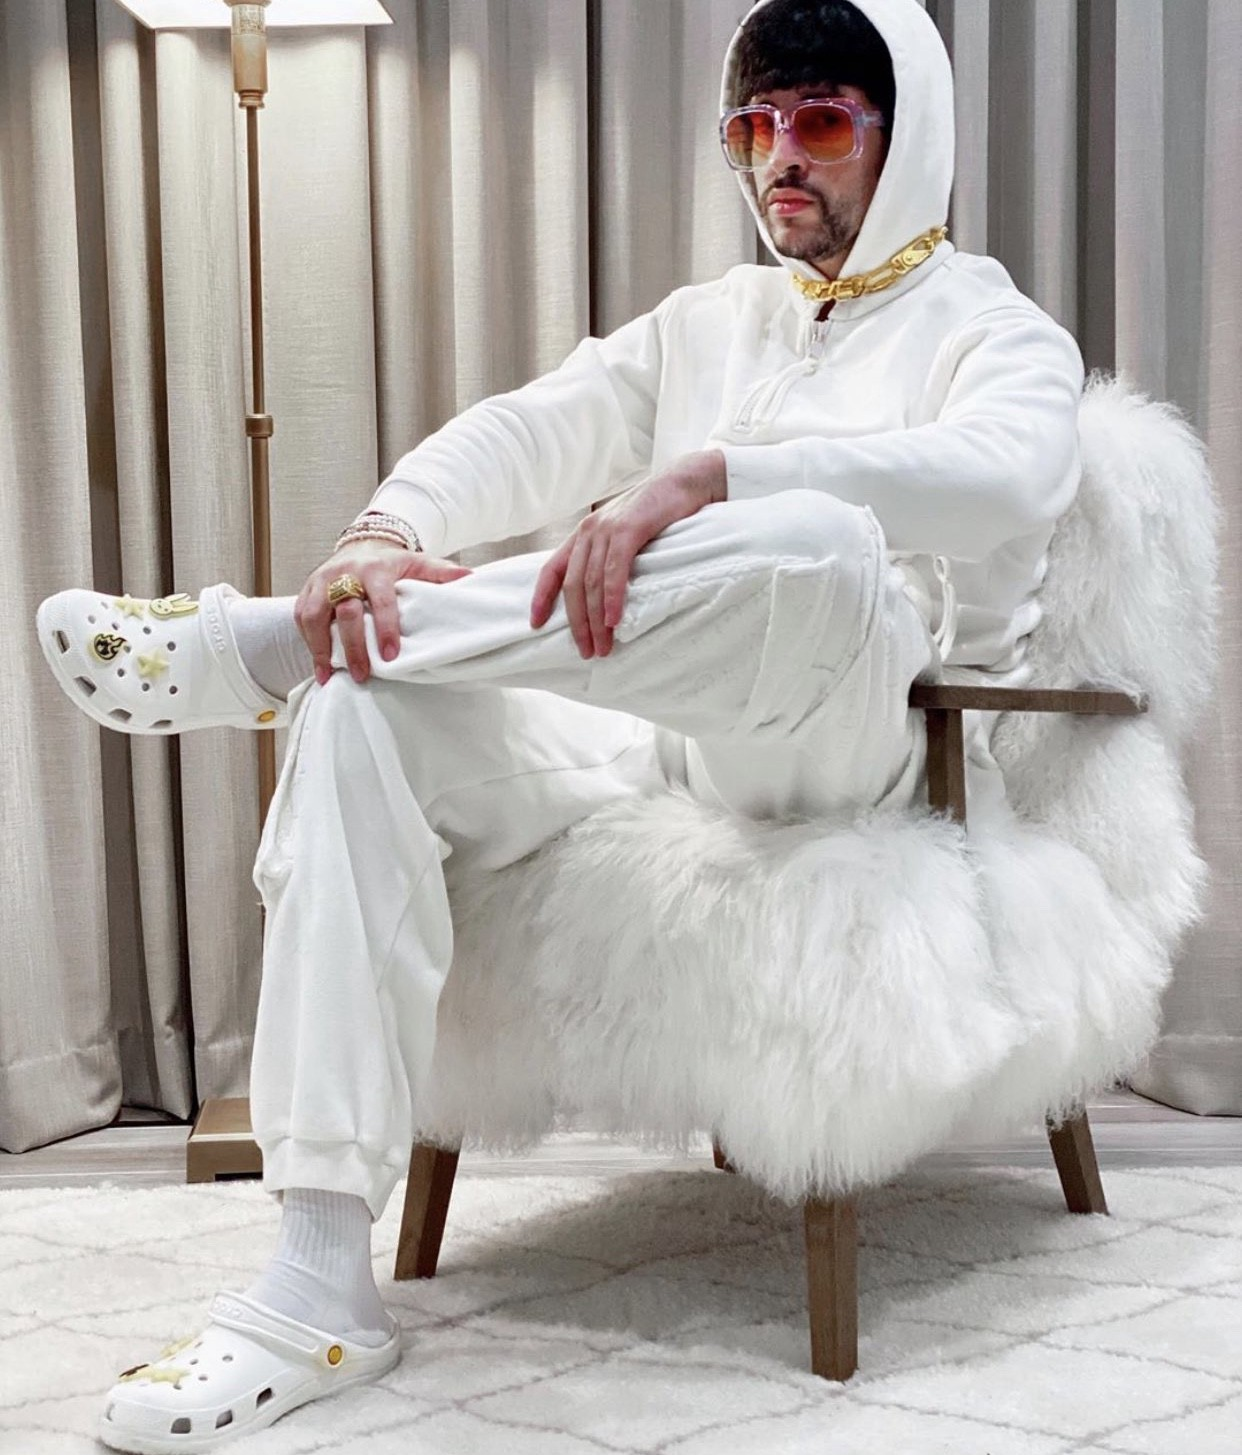 Puerto Rican singer rapper, Bad Bunny, sitting cross-legged on chair, dressed in all white and wearing white minimally bedazzled crocs